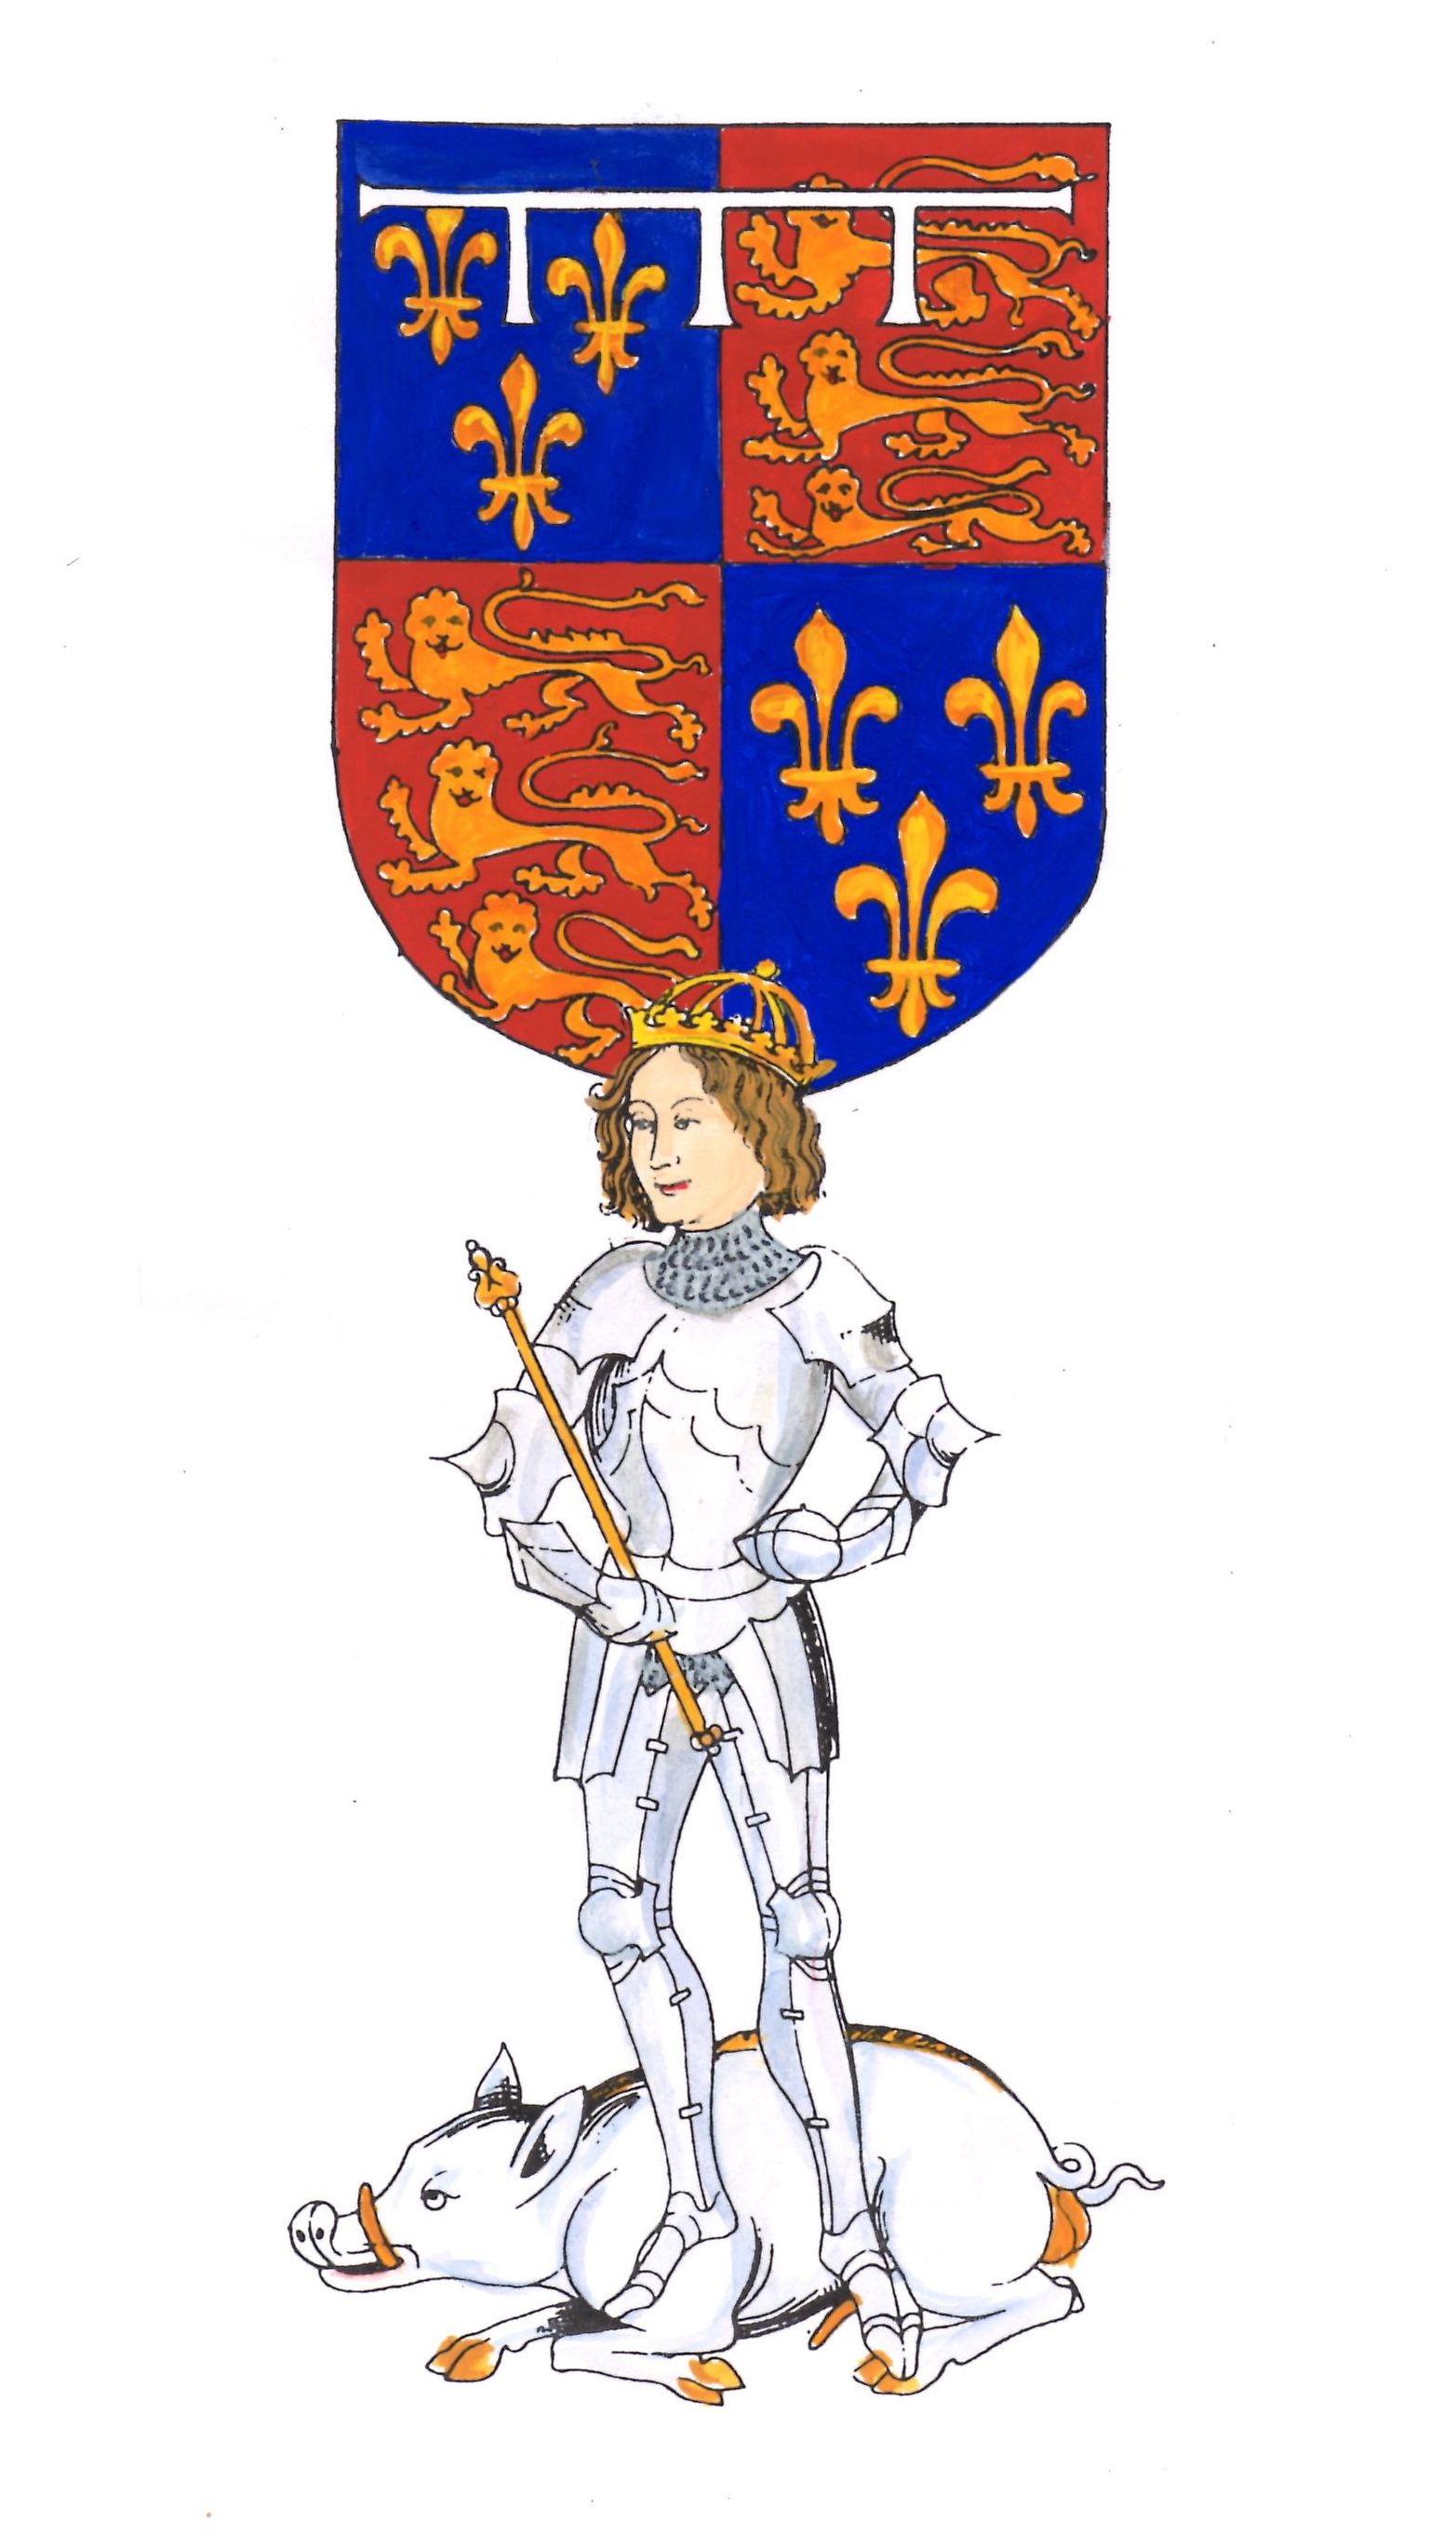 Prince Edward based on the Rous Roll.